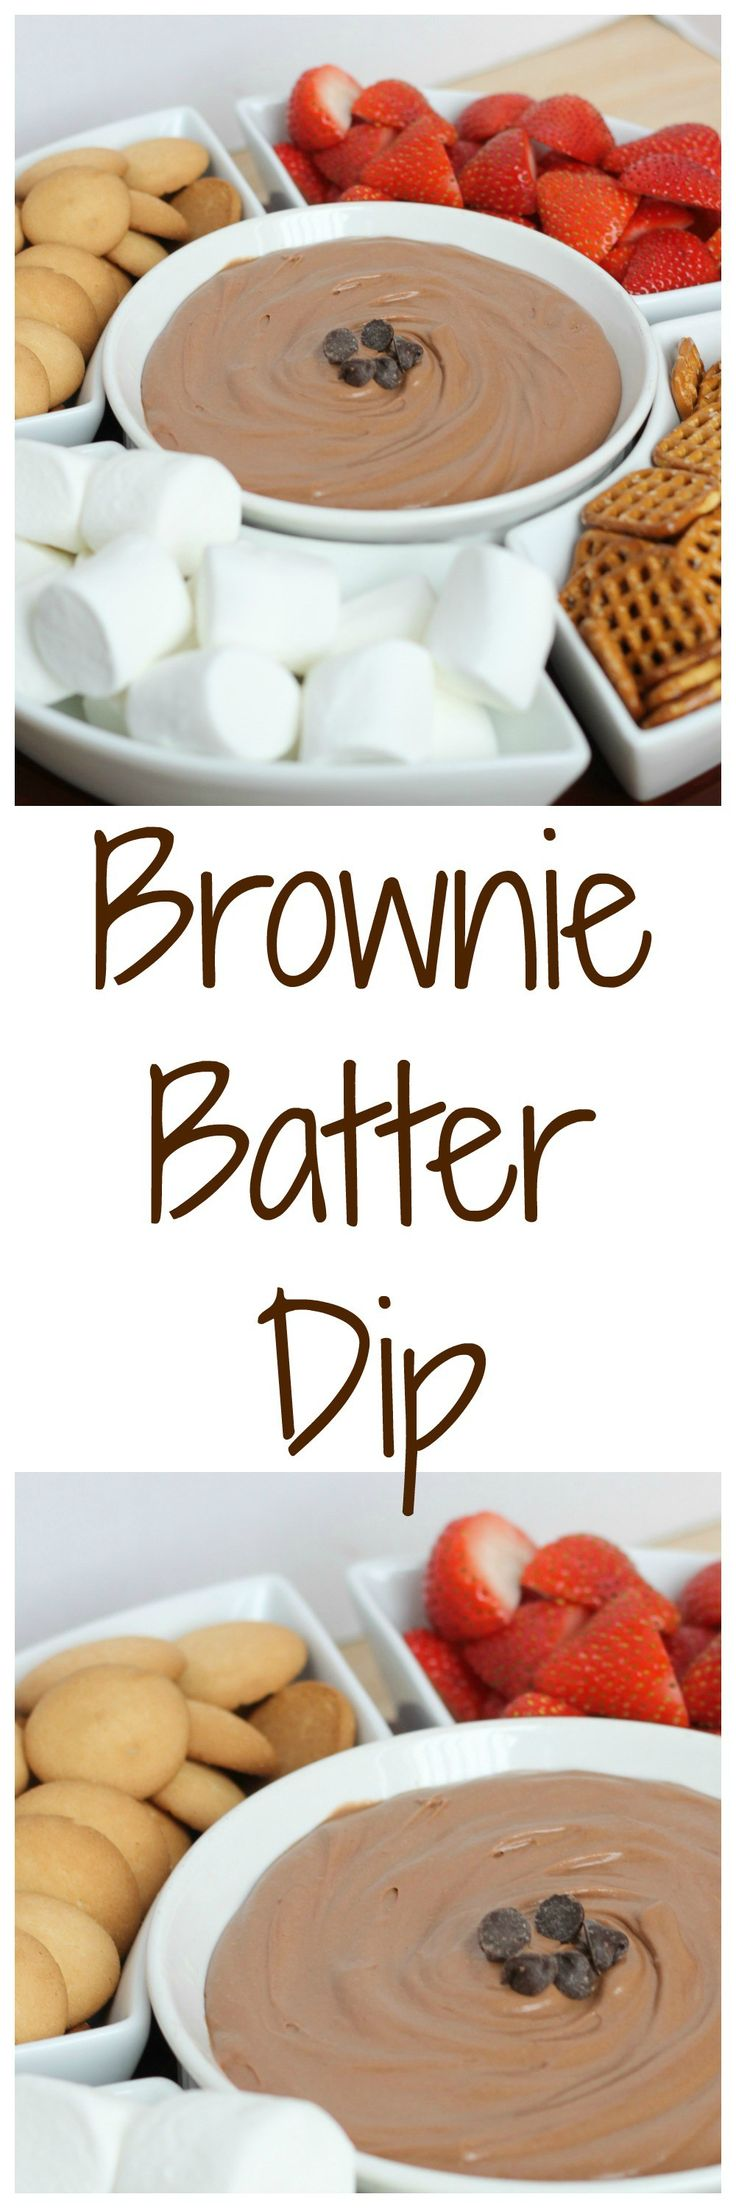 Brownie Batter Dip | Stick a Fork in It A sweet chocolate dessert dip perfect for any party!